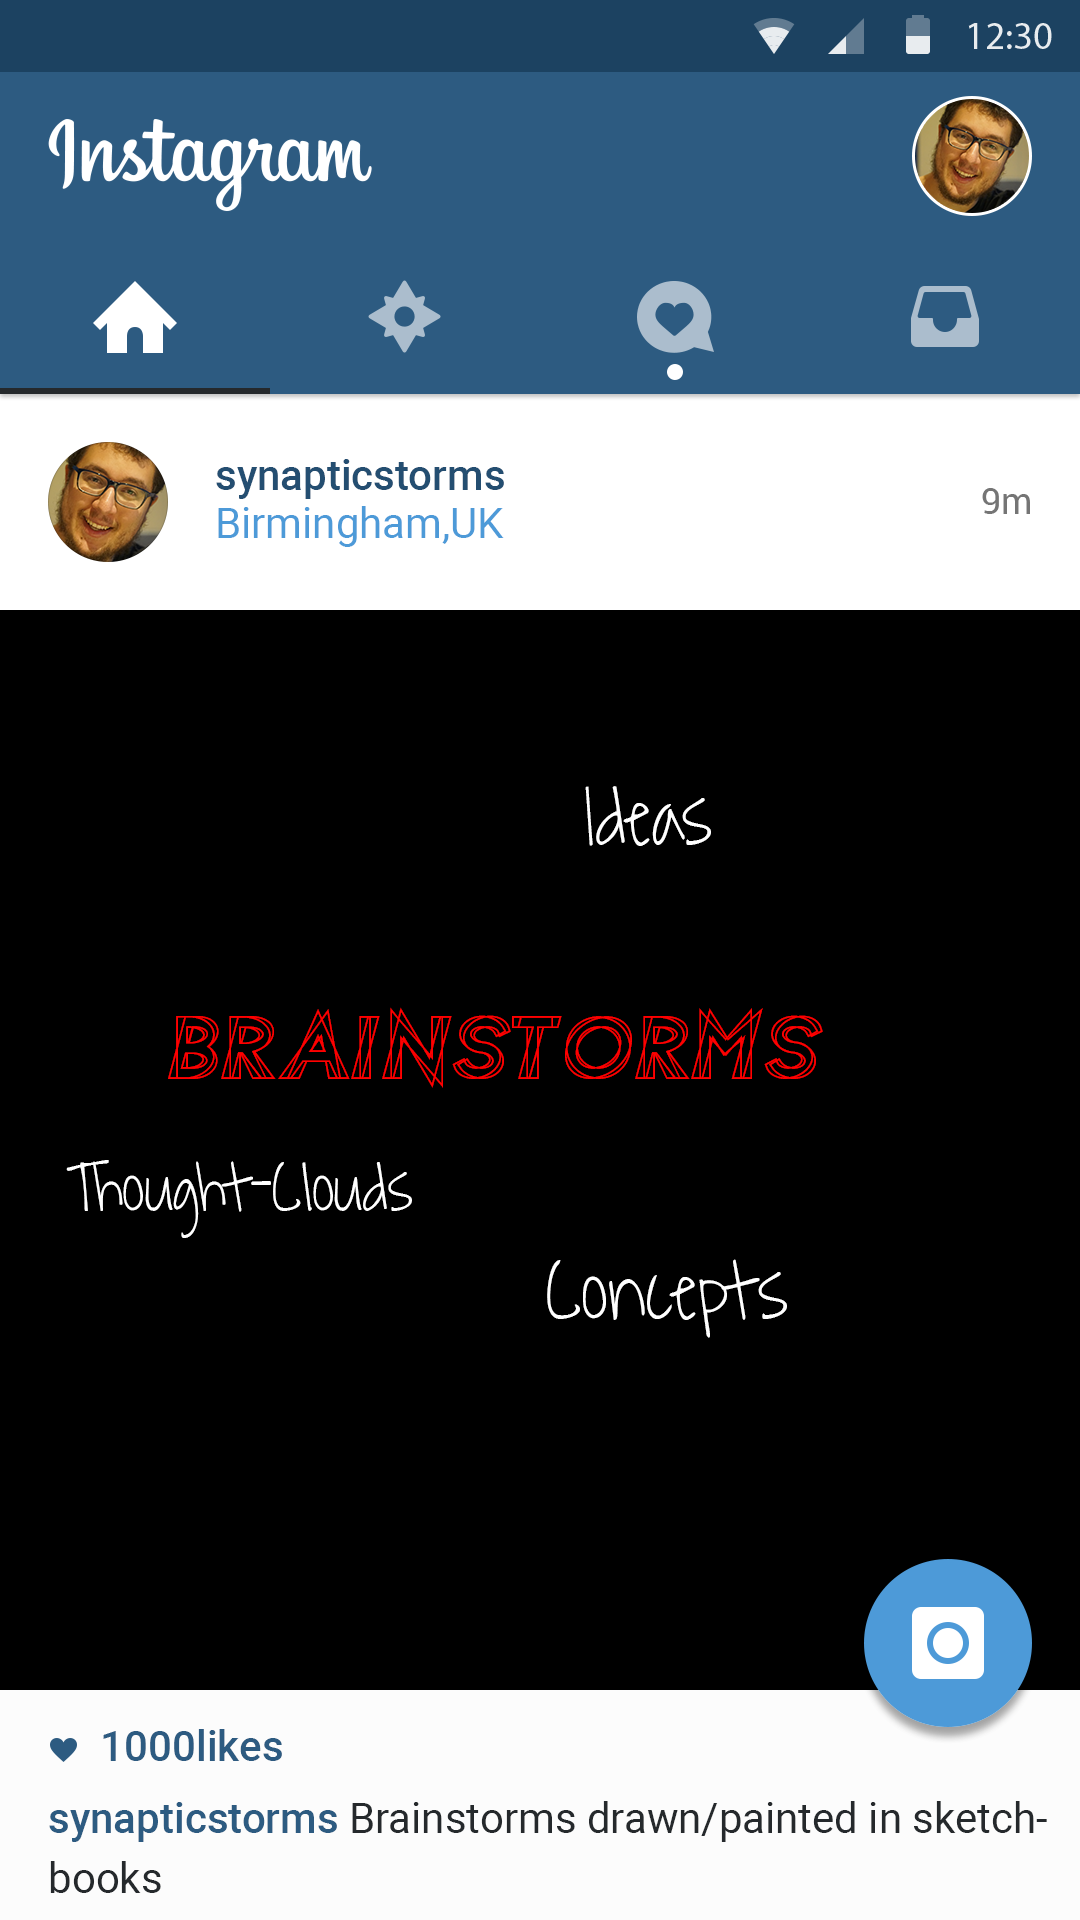 My Brainstorms - @synapticstorms - The abstract interconnections of my ideas and concepts